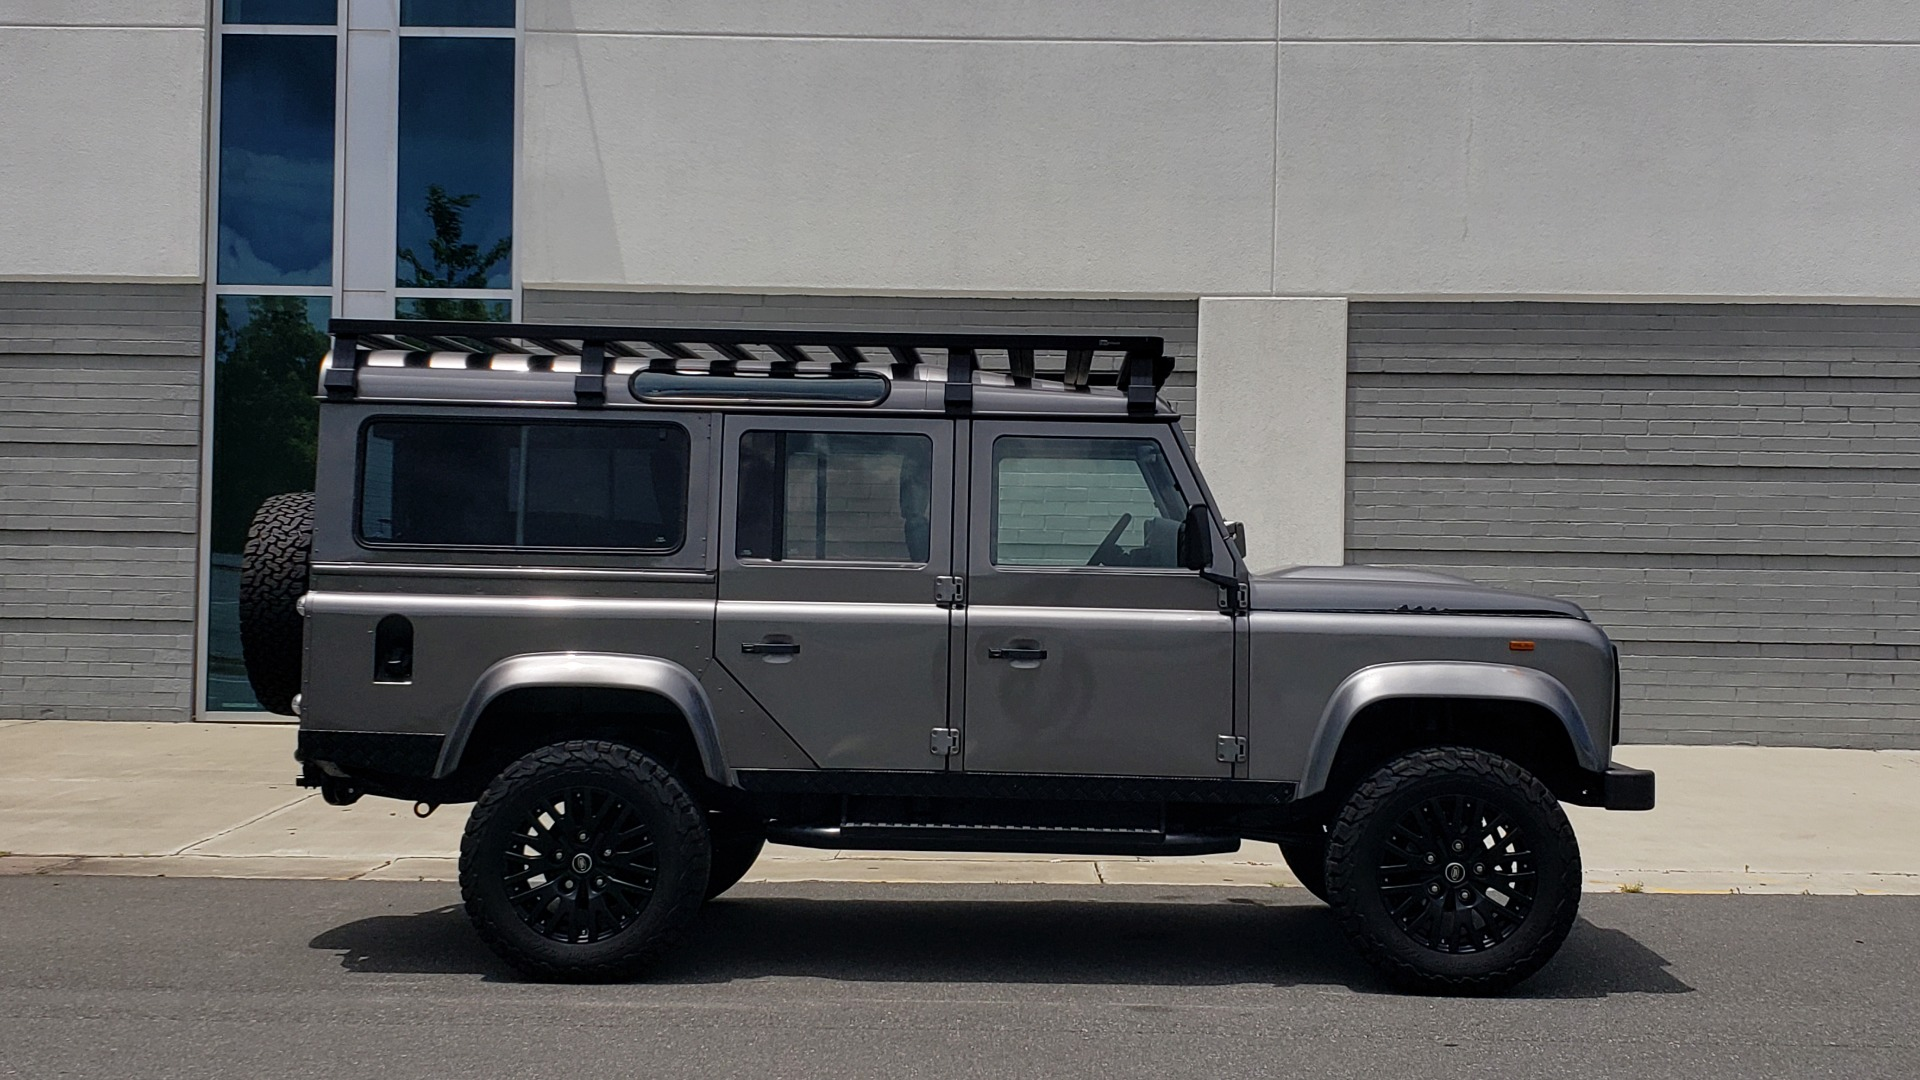 Used 1988 Land Rover DEFENDER 110 CUSTOM 4X4 / LS V8 / PUSH BUTTON AUTO / LEATHER / ROOF RACK for sale $147,888 at Formula Imports in Charlotte NC 28227 22